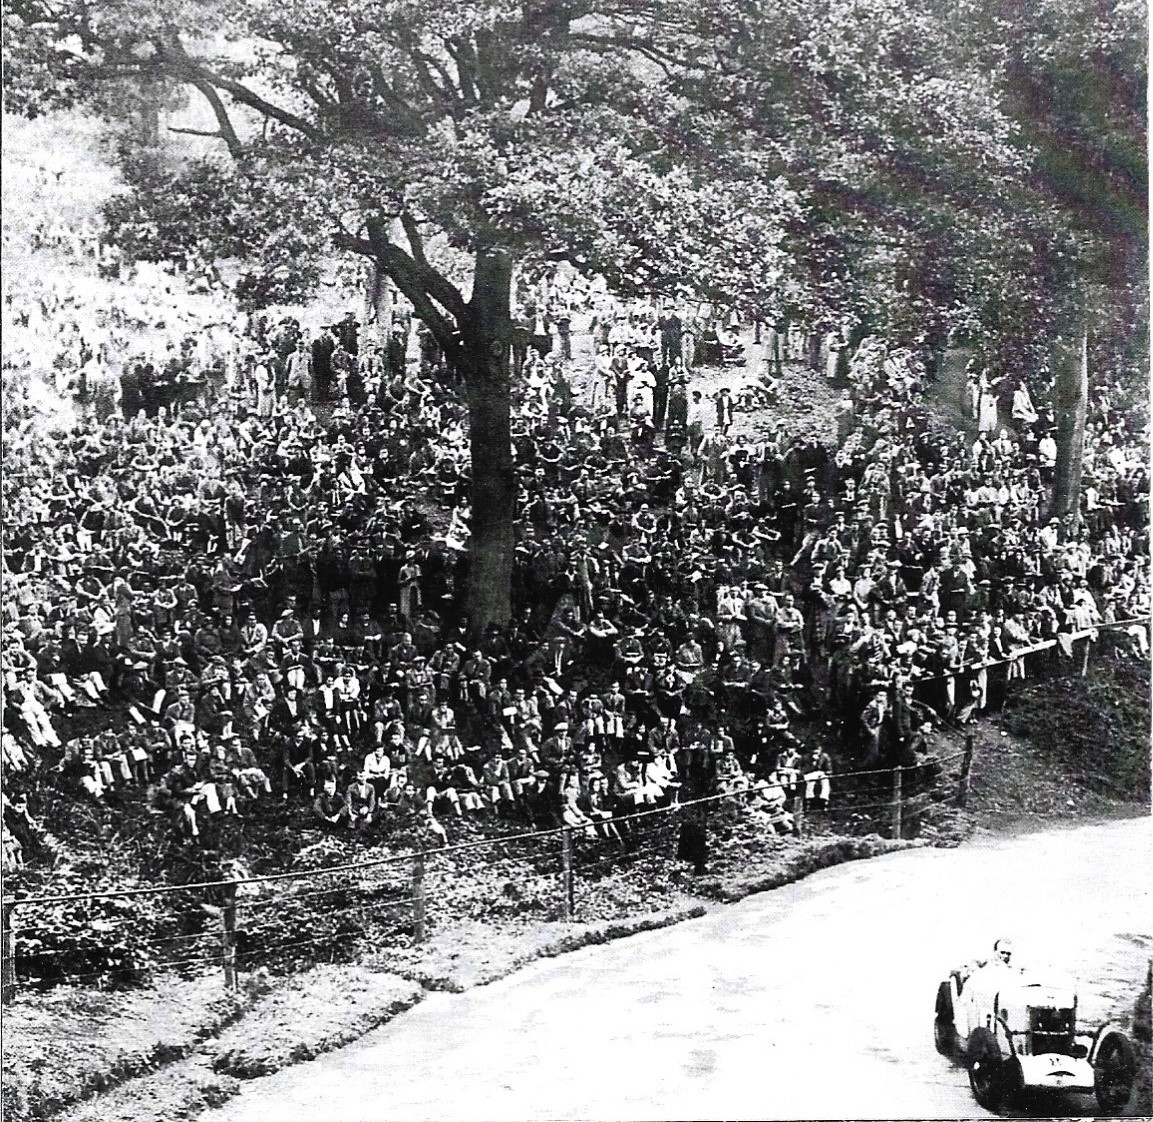 The MG J3 in Summer 1933. Look at those crowds! Bill Platt competed at the Shelseley Walsh Hill Climb near Worcester. On both occasions it was held in 1933. Amazingly he set an identical best time of 54.20 seconds on both occasions! Photo by Nev Churcher